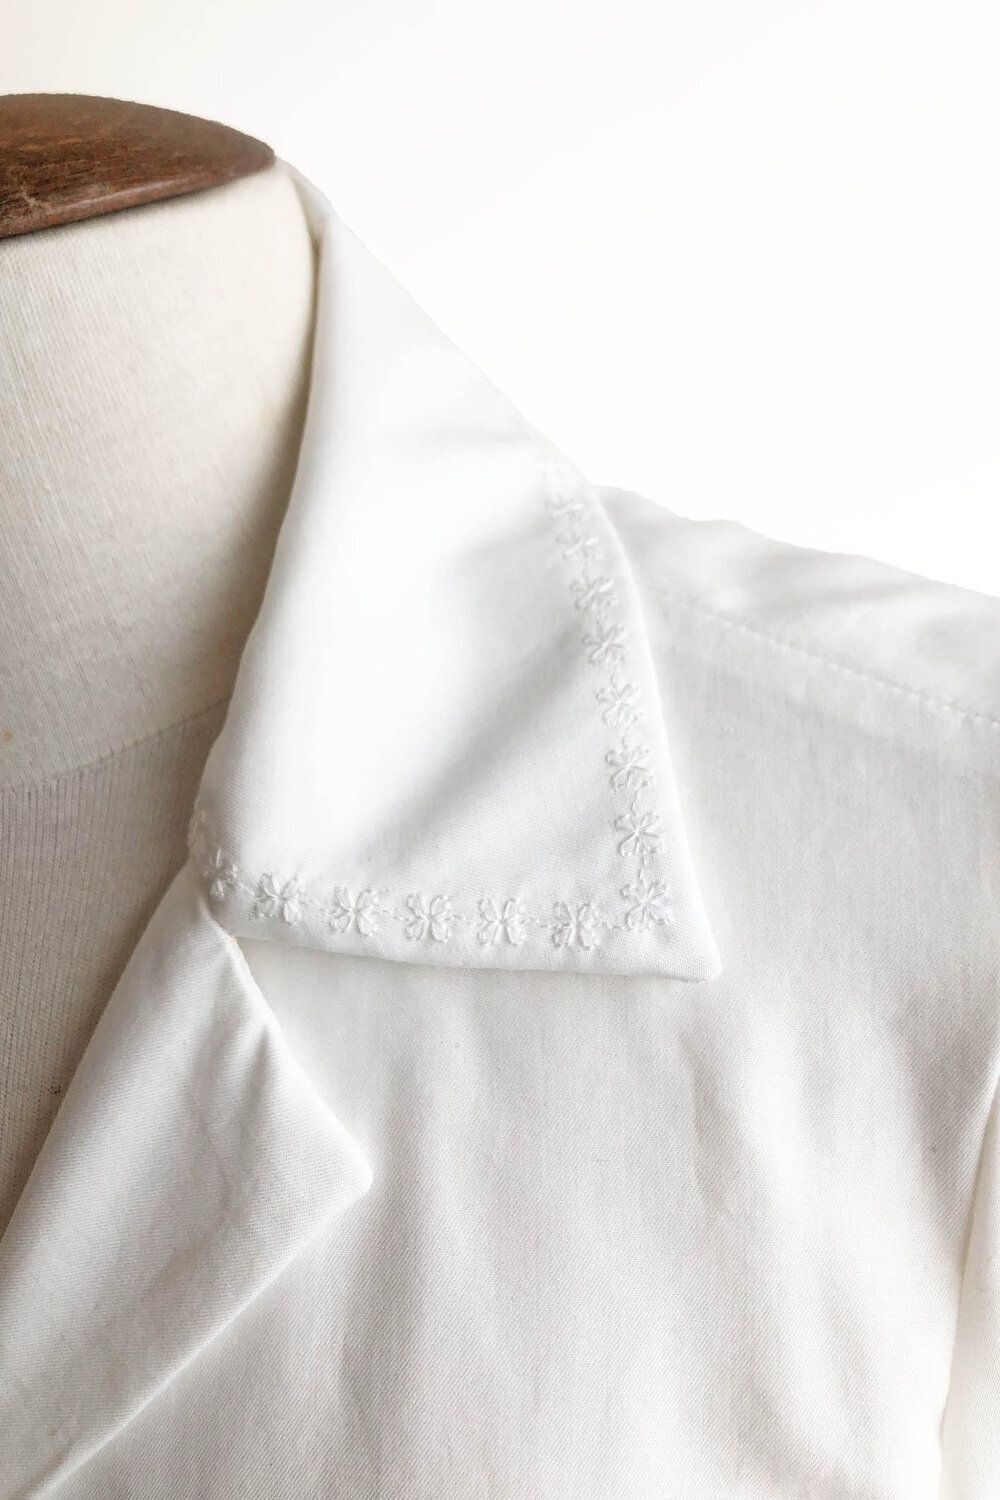 The Lillias blouse embroidery detail